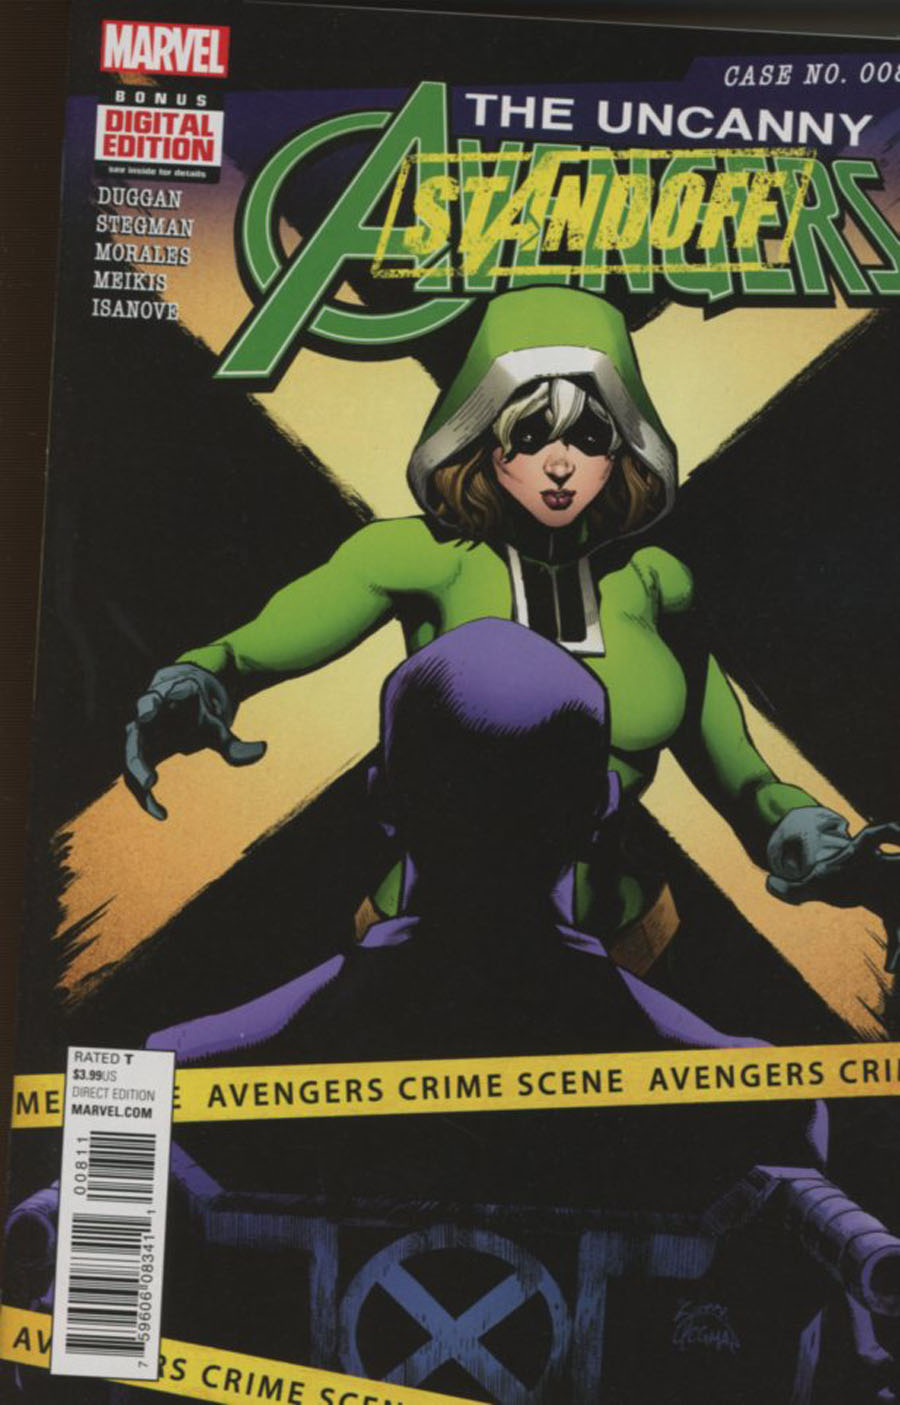 Uncanny Avengers Vol 3 #8 Cover A Regular Ryan Stegman Cover (Standoff Tie-In)